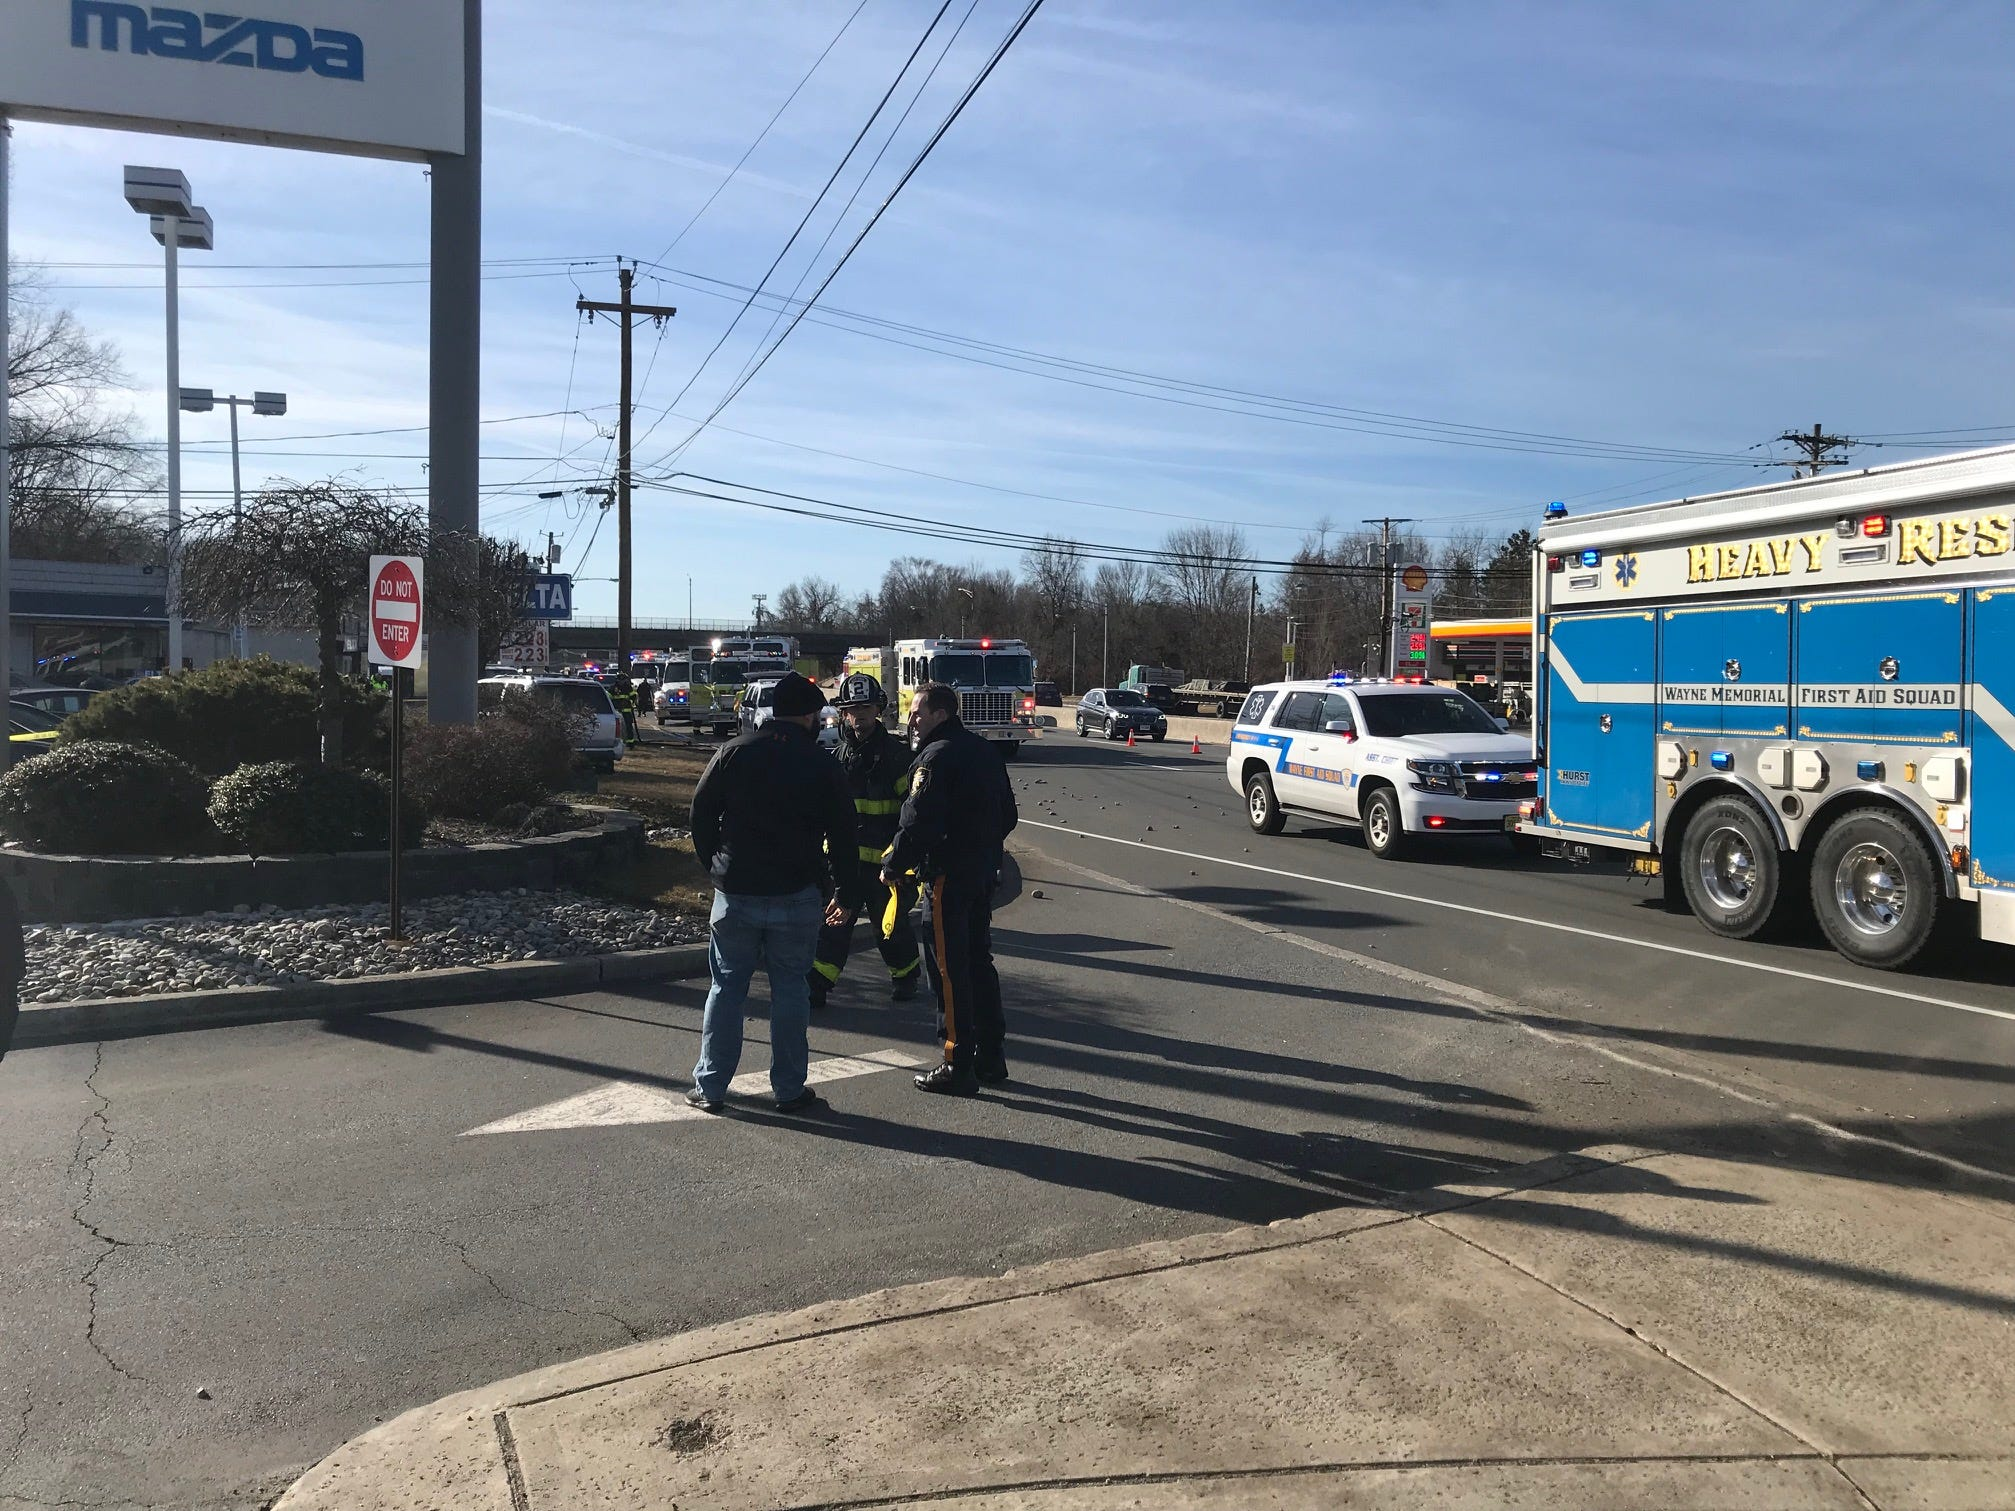 Firefighters and police were on scene at a serious crash in Wayne on Route 23 on Feb. 19, 2019.